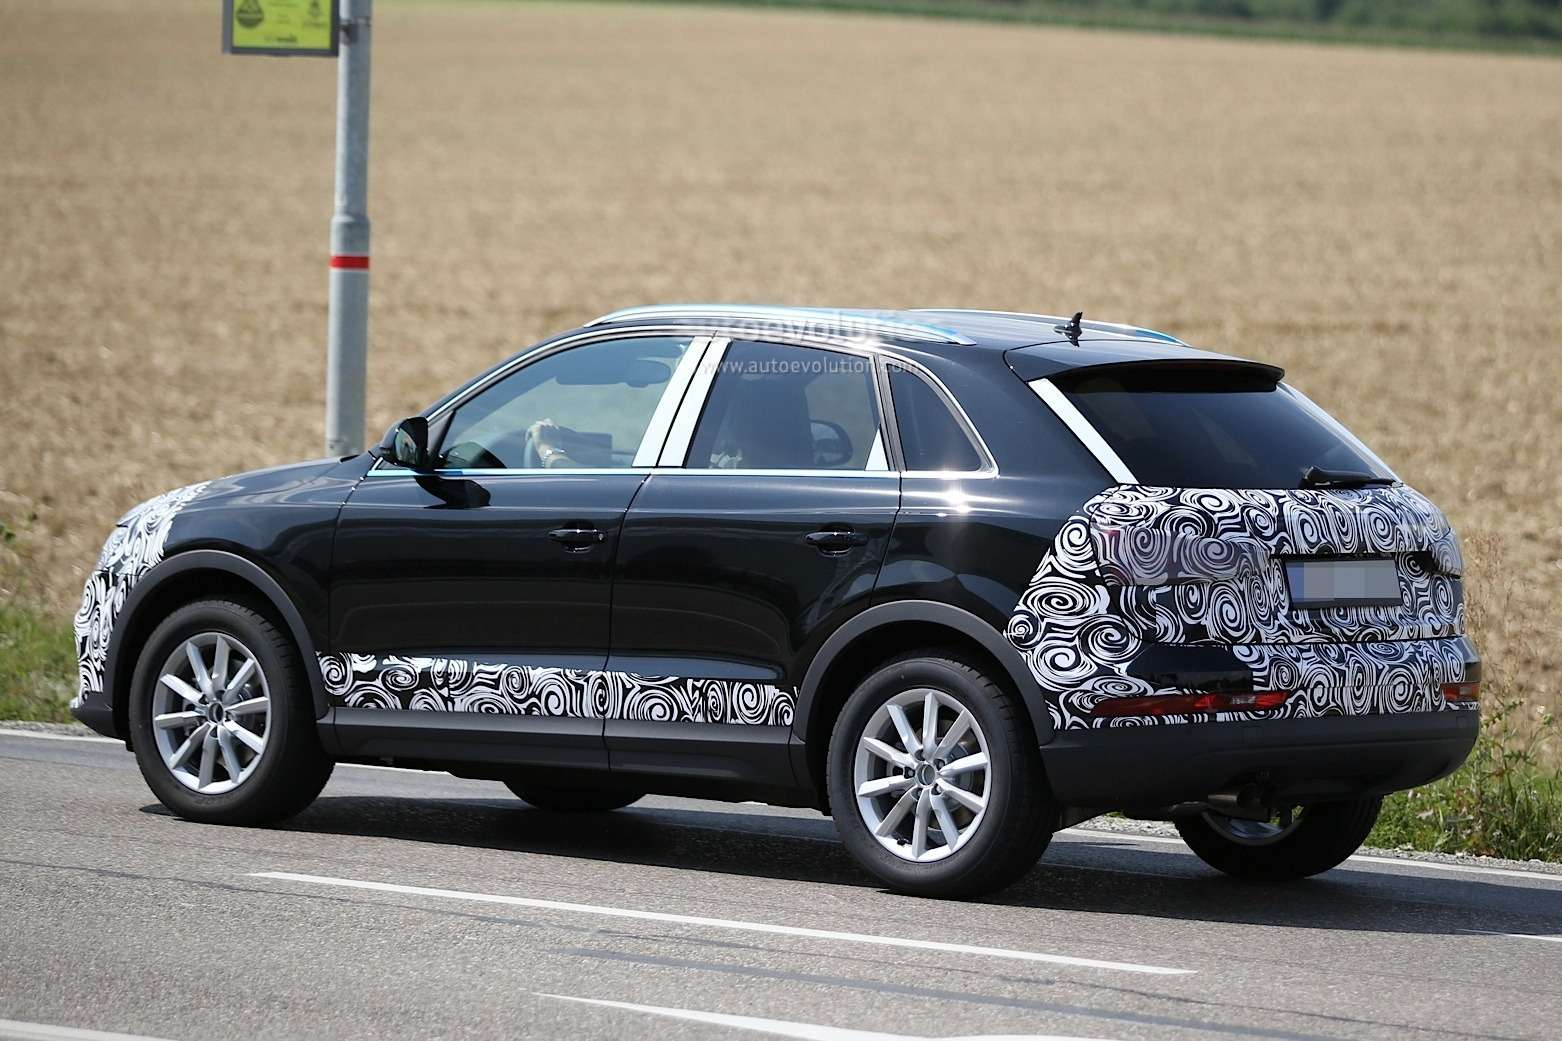 2016-audi-rs-q3-facelift-joins-q3-during-testing-session_18